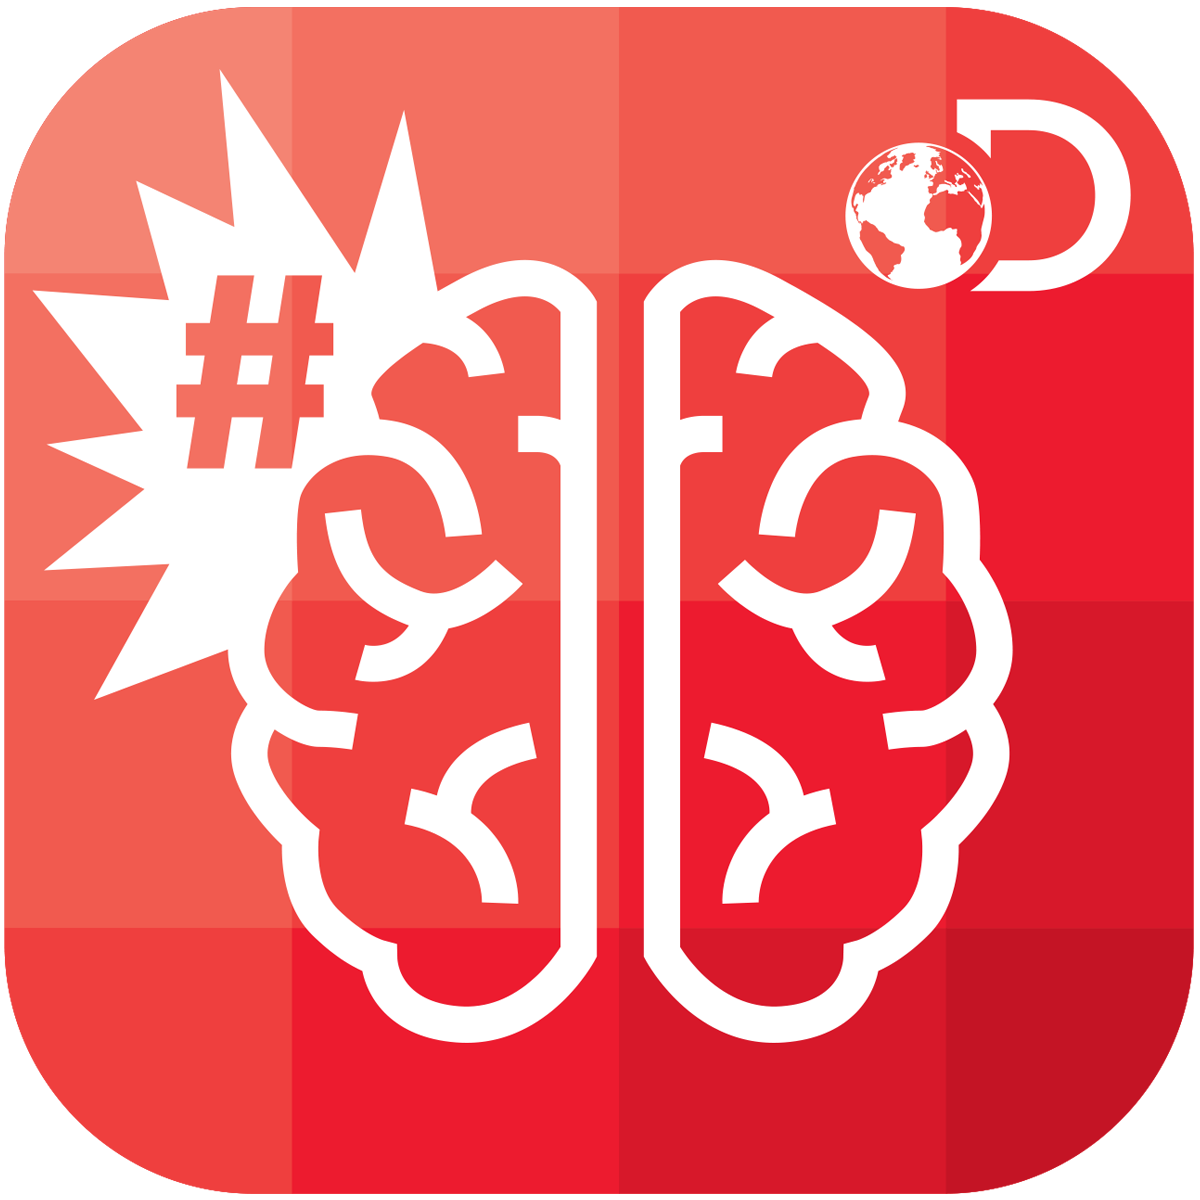 DISCOVERY #MINDBLOWN APP - What can you do in 5 minutes? Play games? Watch AR and videos? Get free rewards? You can do all of this awesome stuff with the Discovery #MINDBLOWN app!